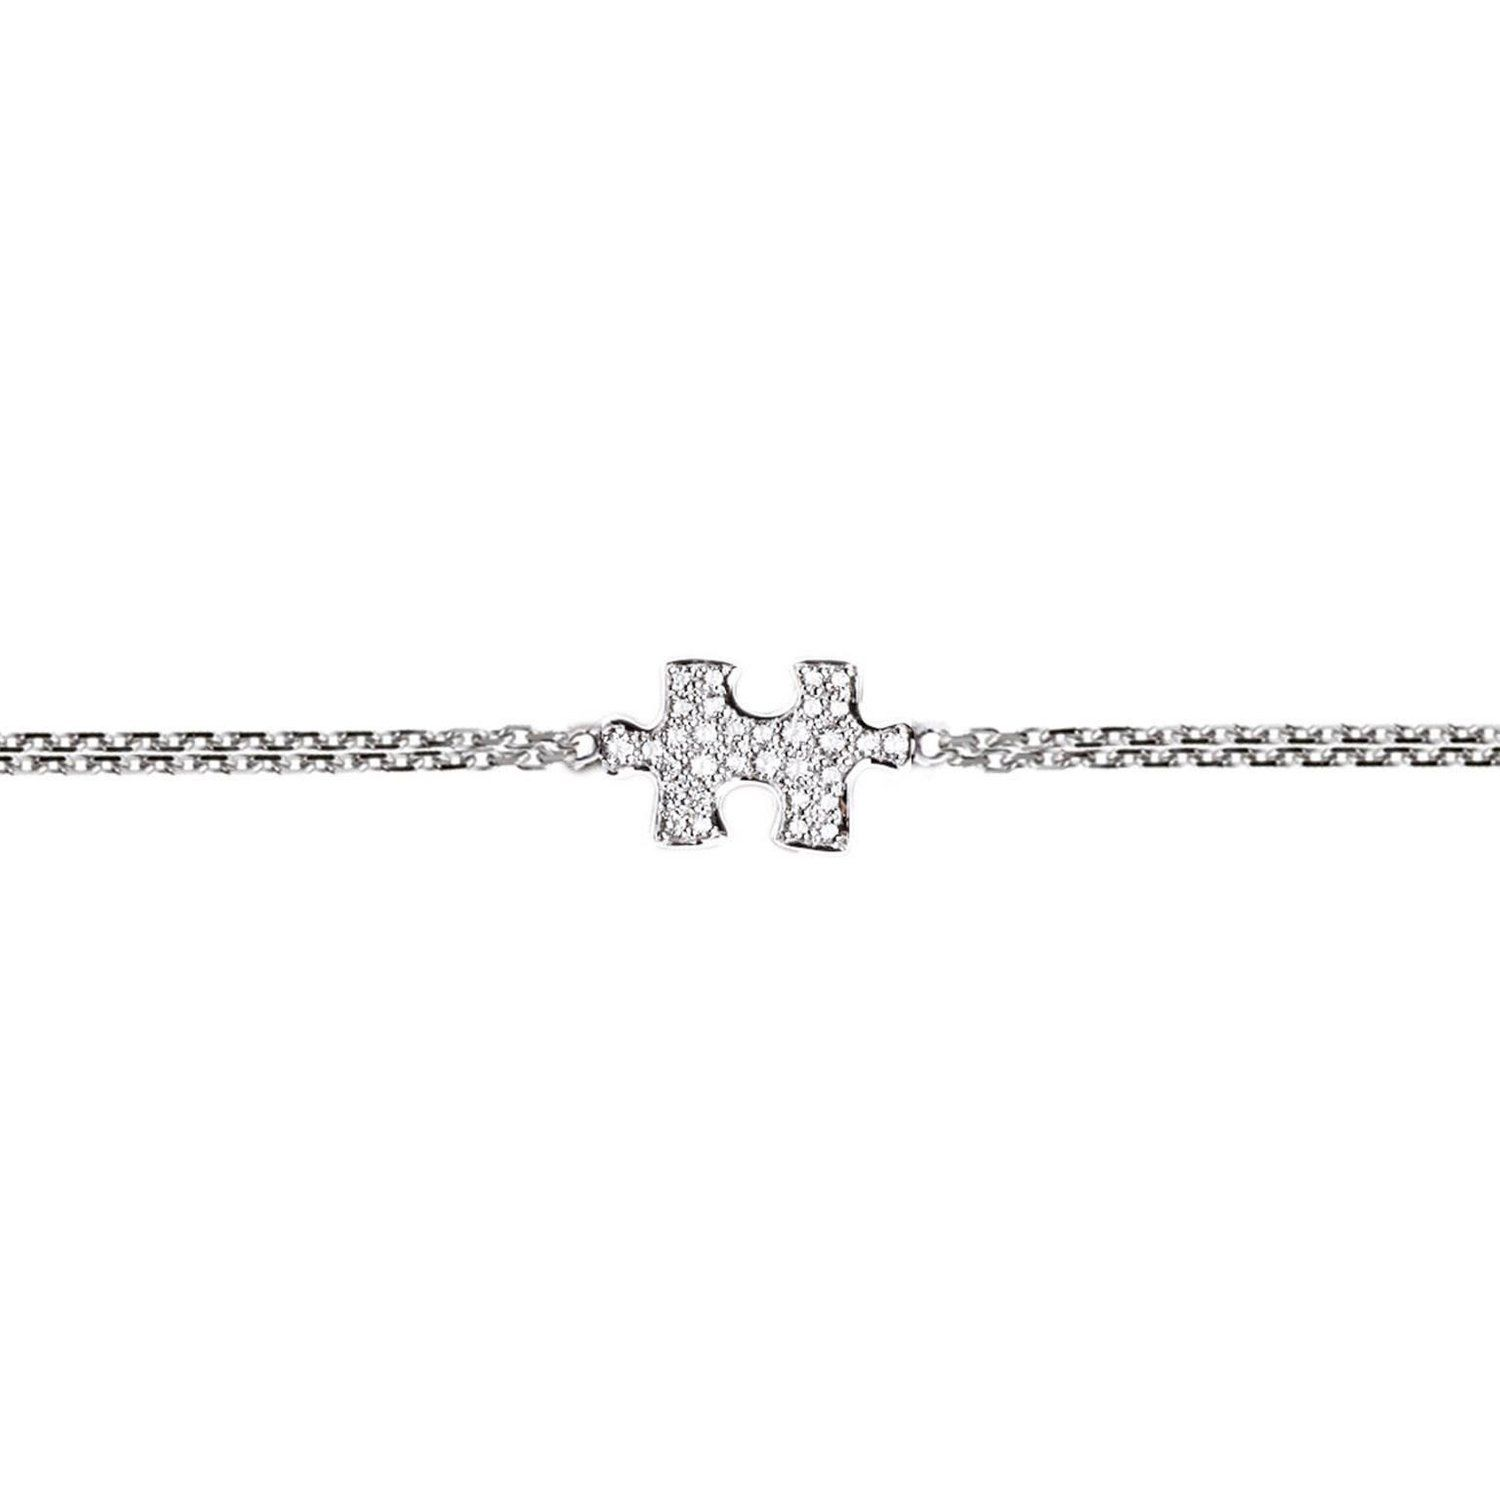 Akillis Puzzle White Gold Half Set With Diamonds Bracelet lexnjwIT